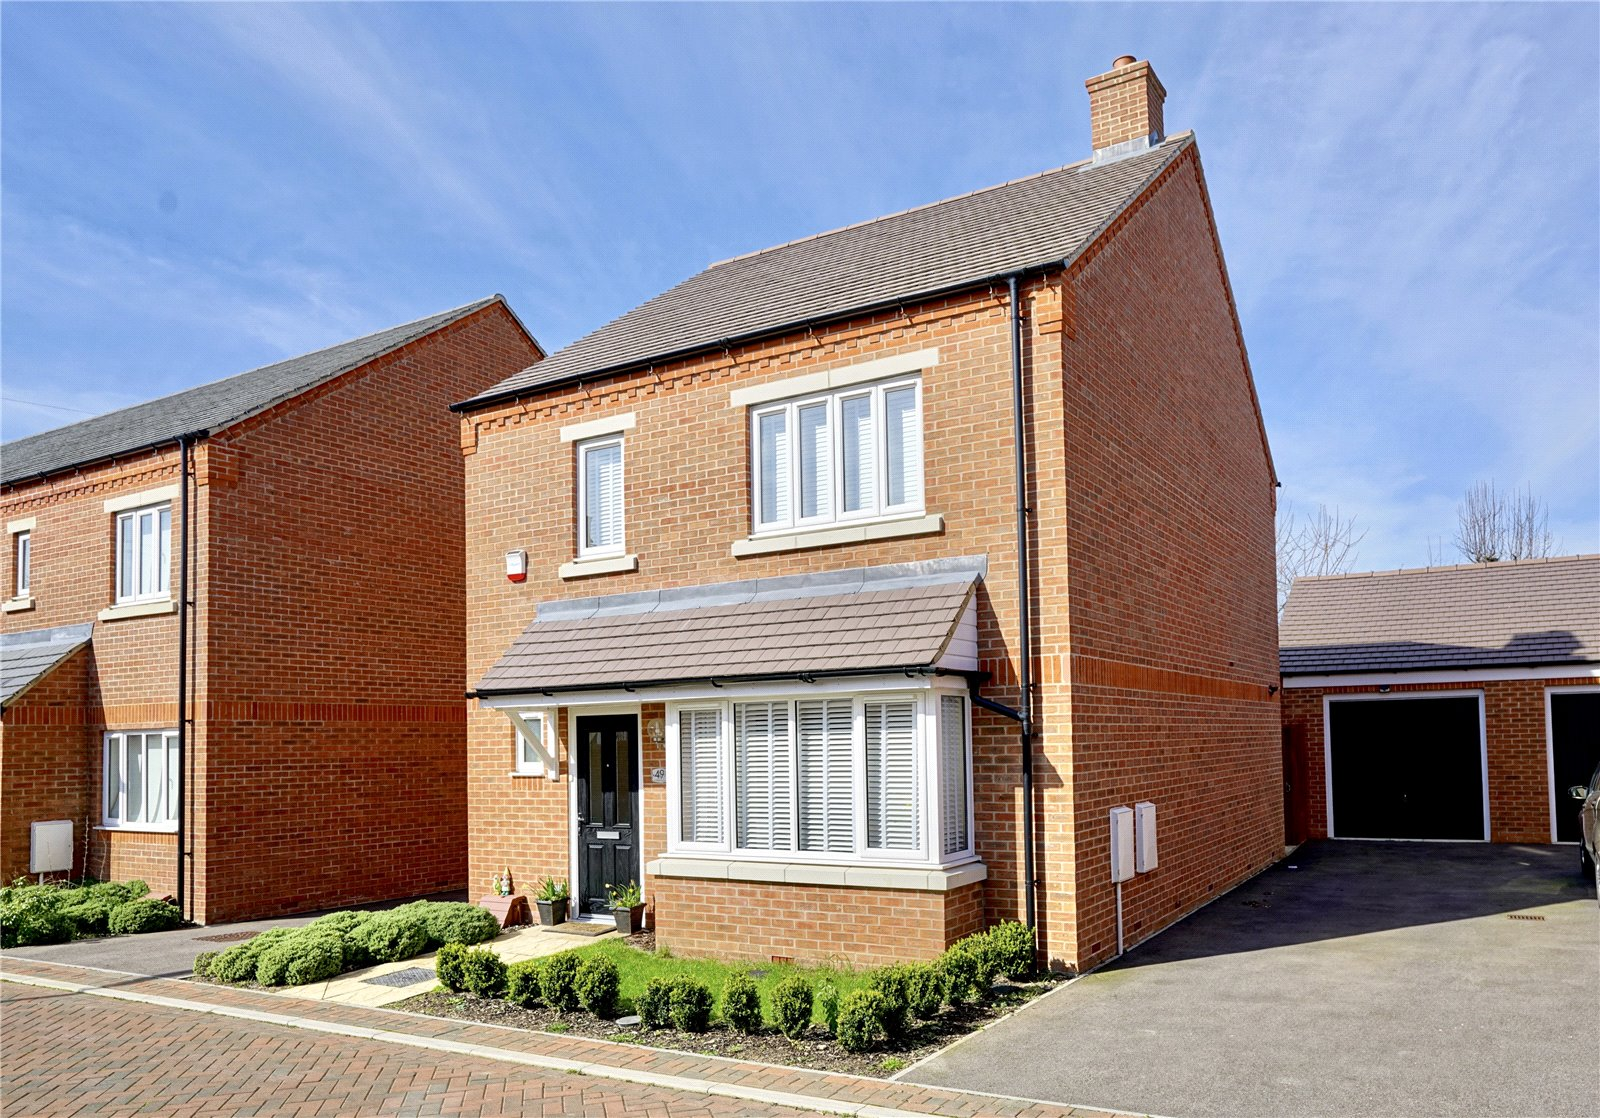 4 bed house for sale in Whinfell Close, Eaton Socon, PE19